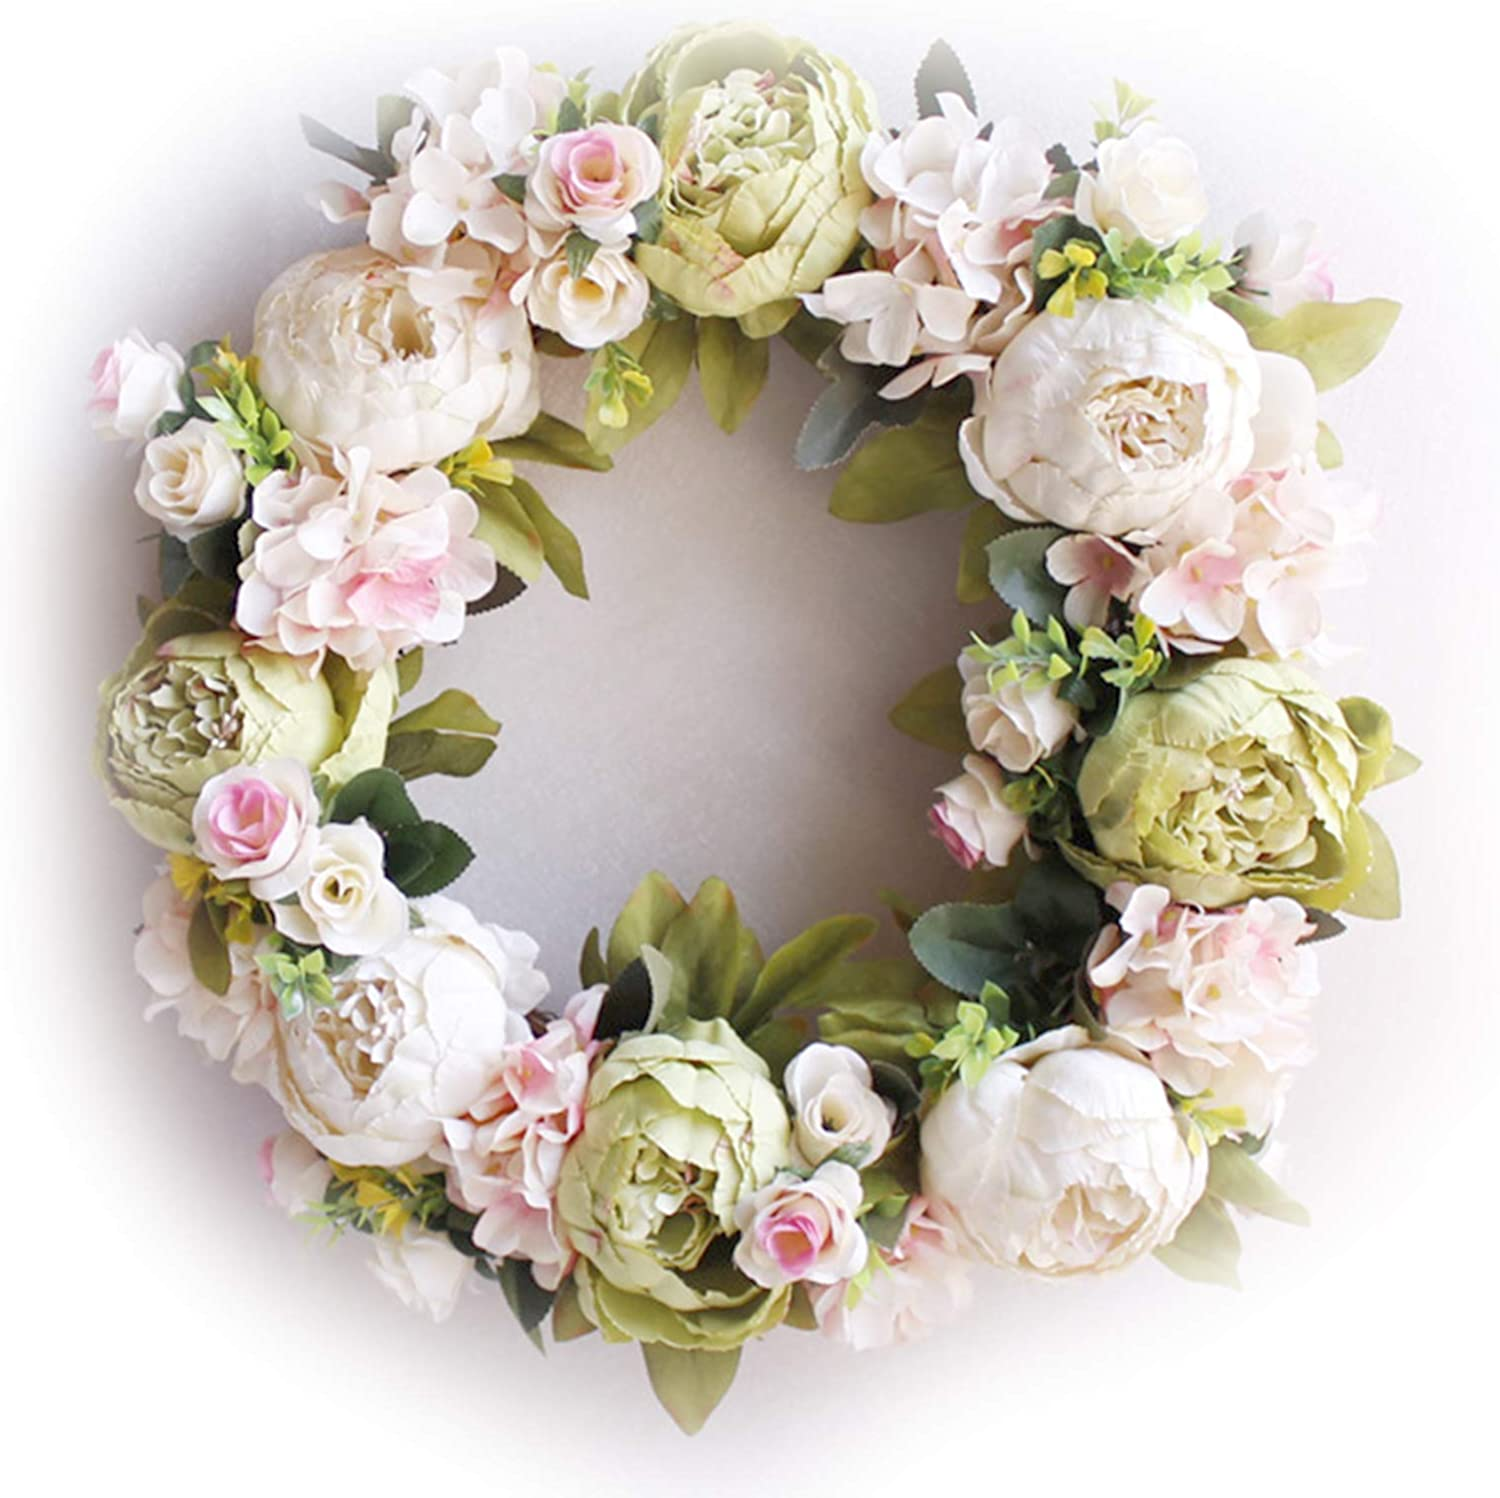 Itlovely Large Peonies Wreath Front Large-scale sale cheap Wr Door Handcrafted -